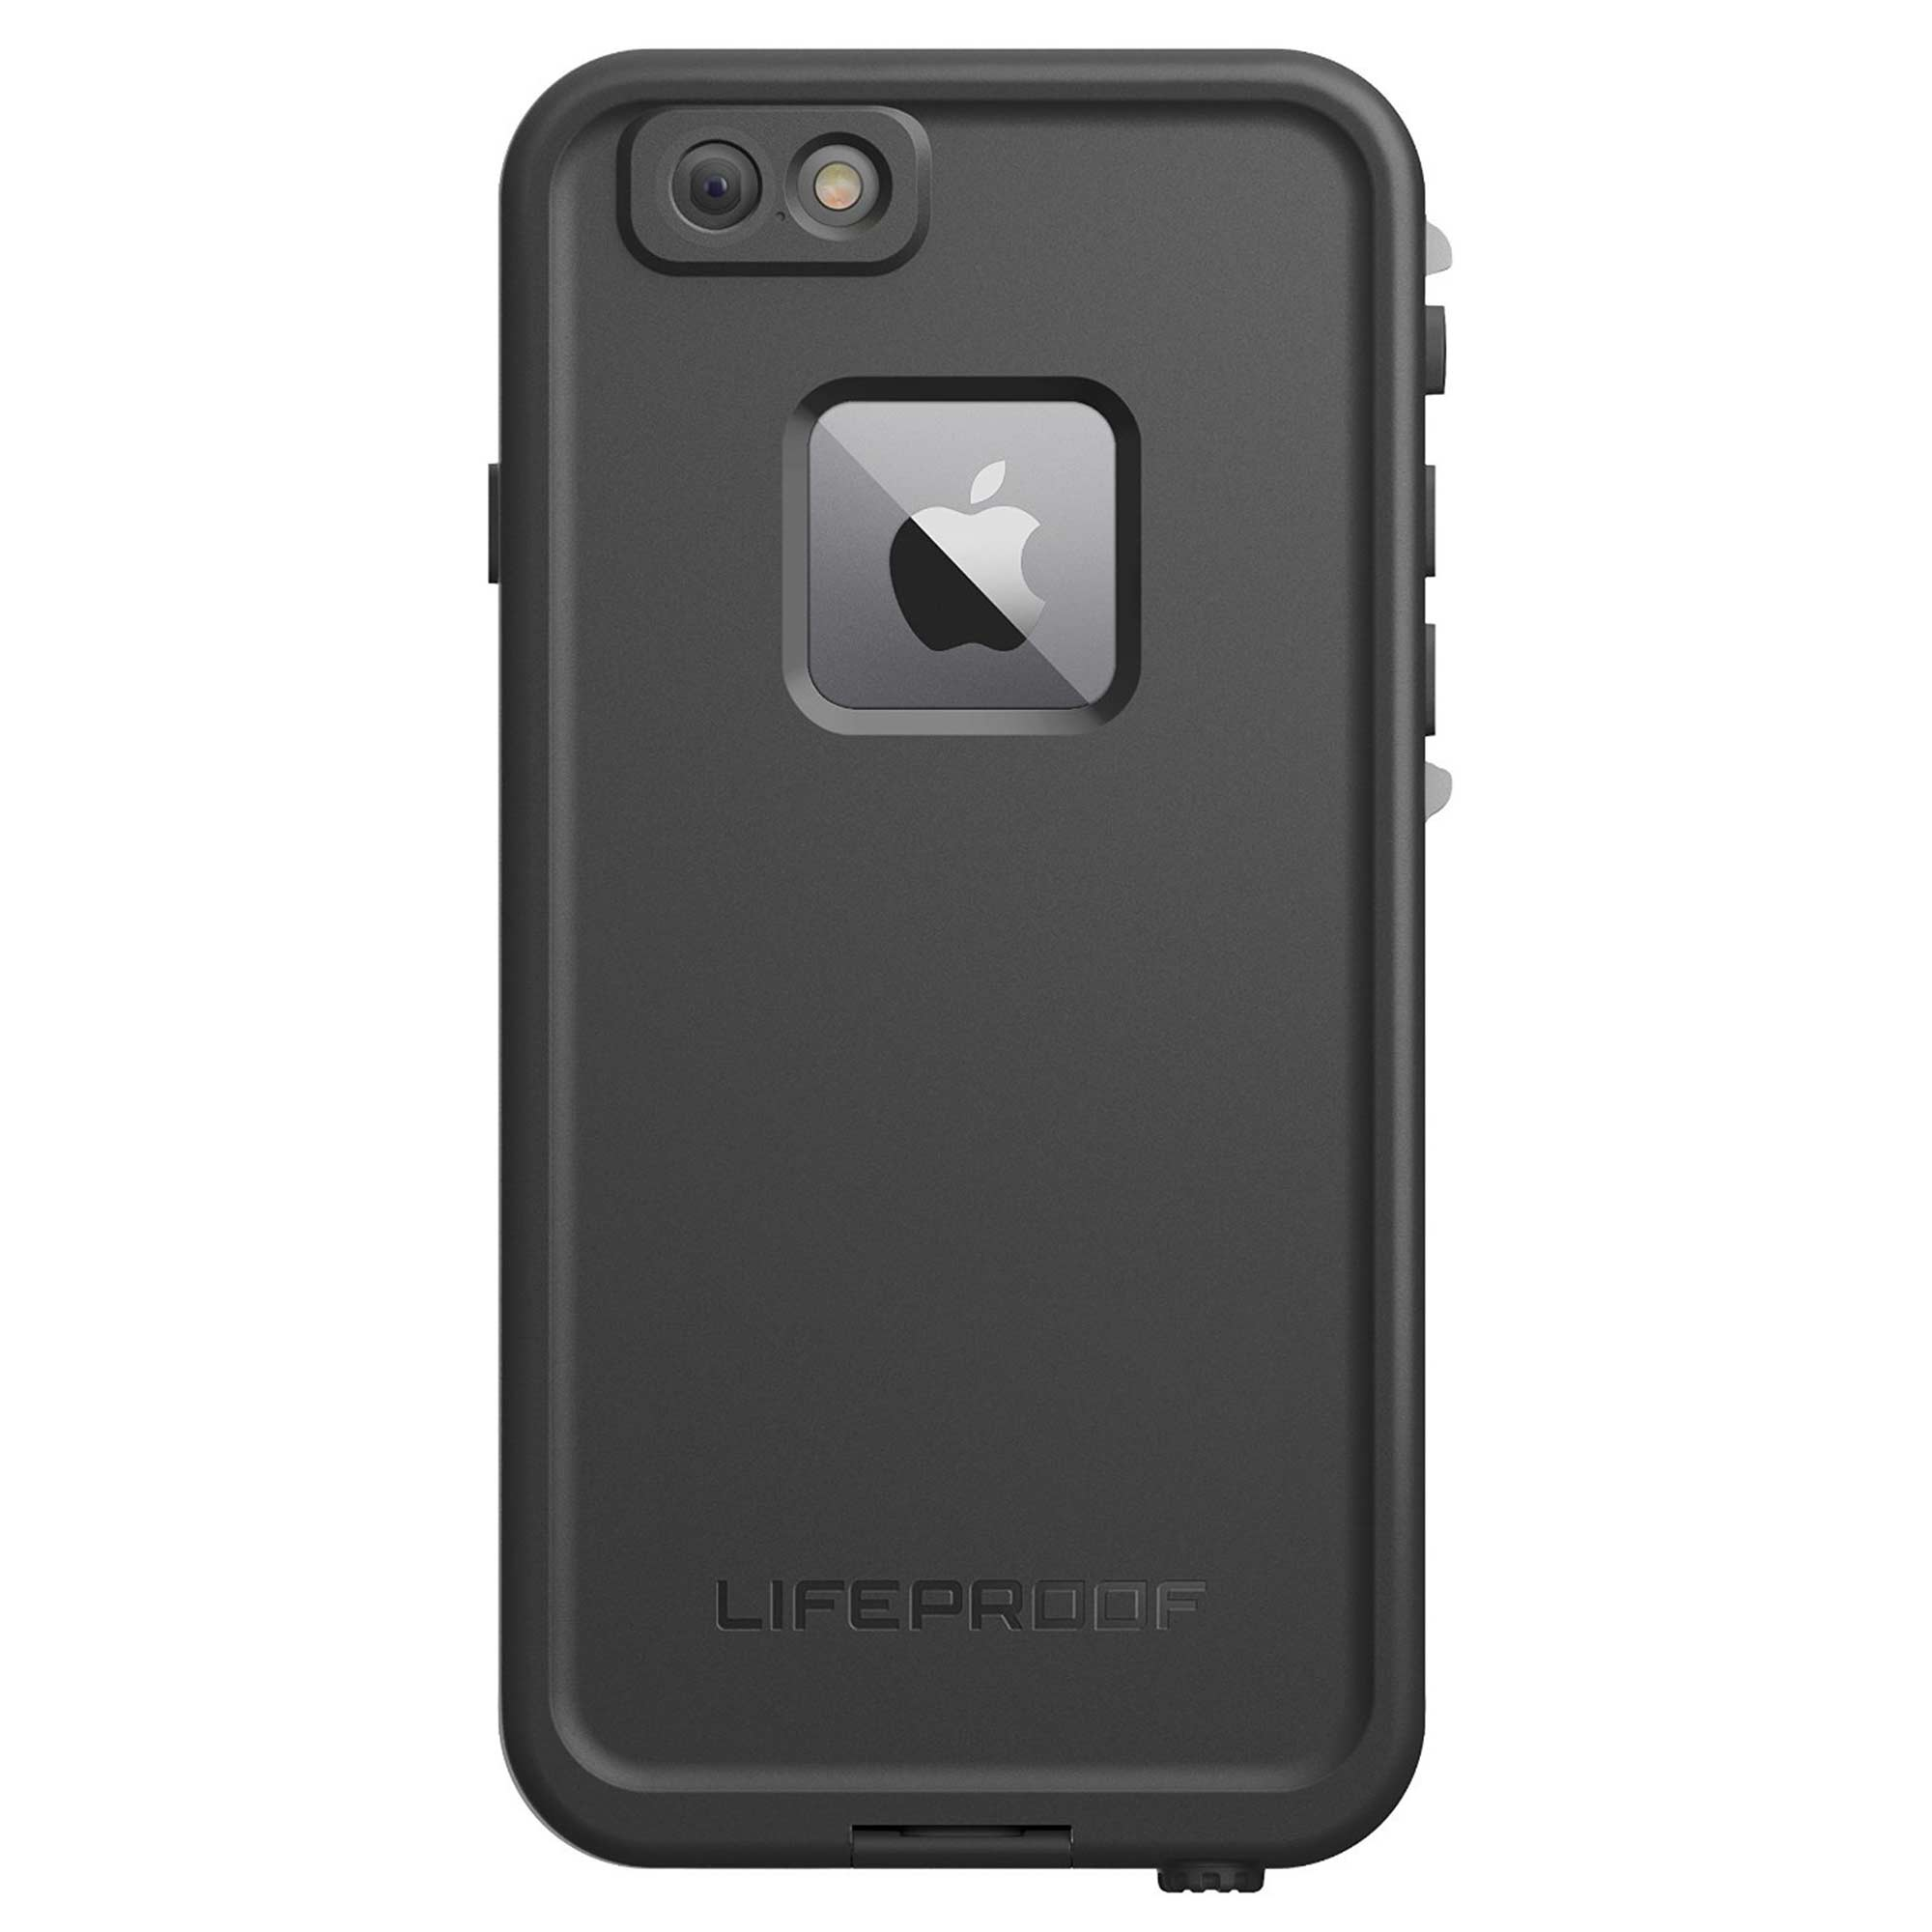 info for f19b5 07631 Otterbox,77-52558,LifeProof Fre Apple iPhone 6/6s Plus Black